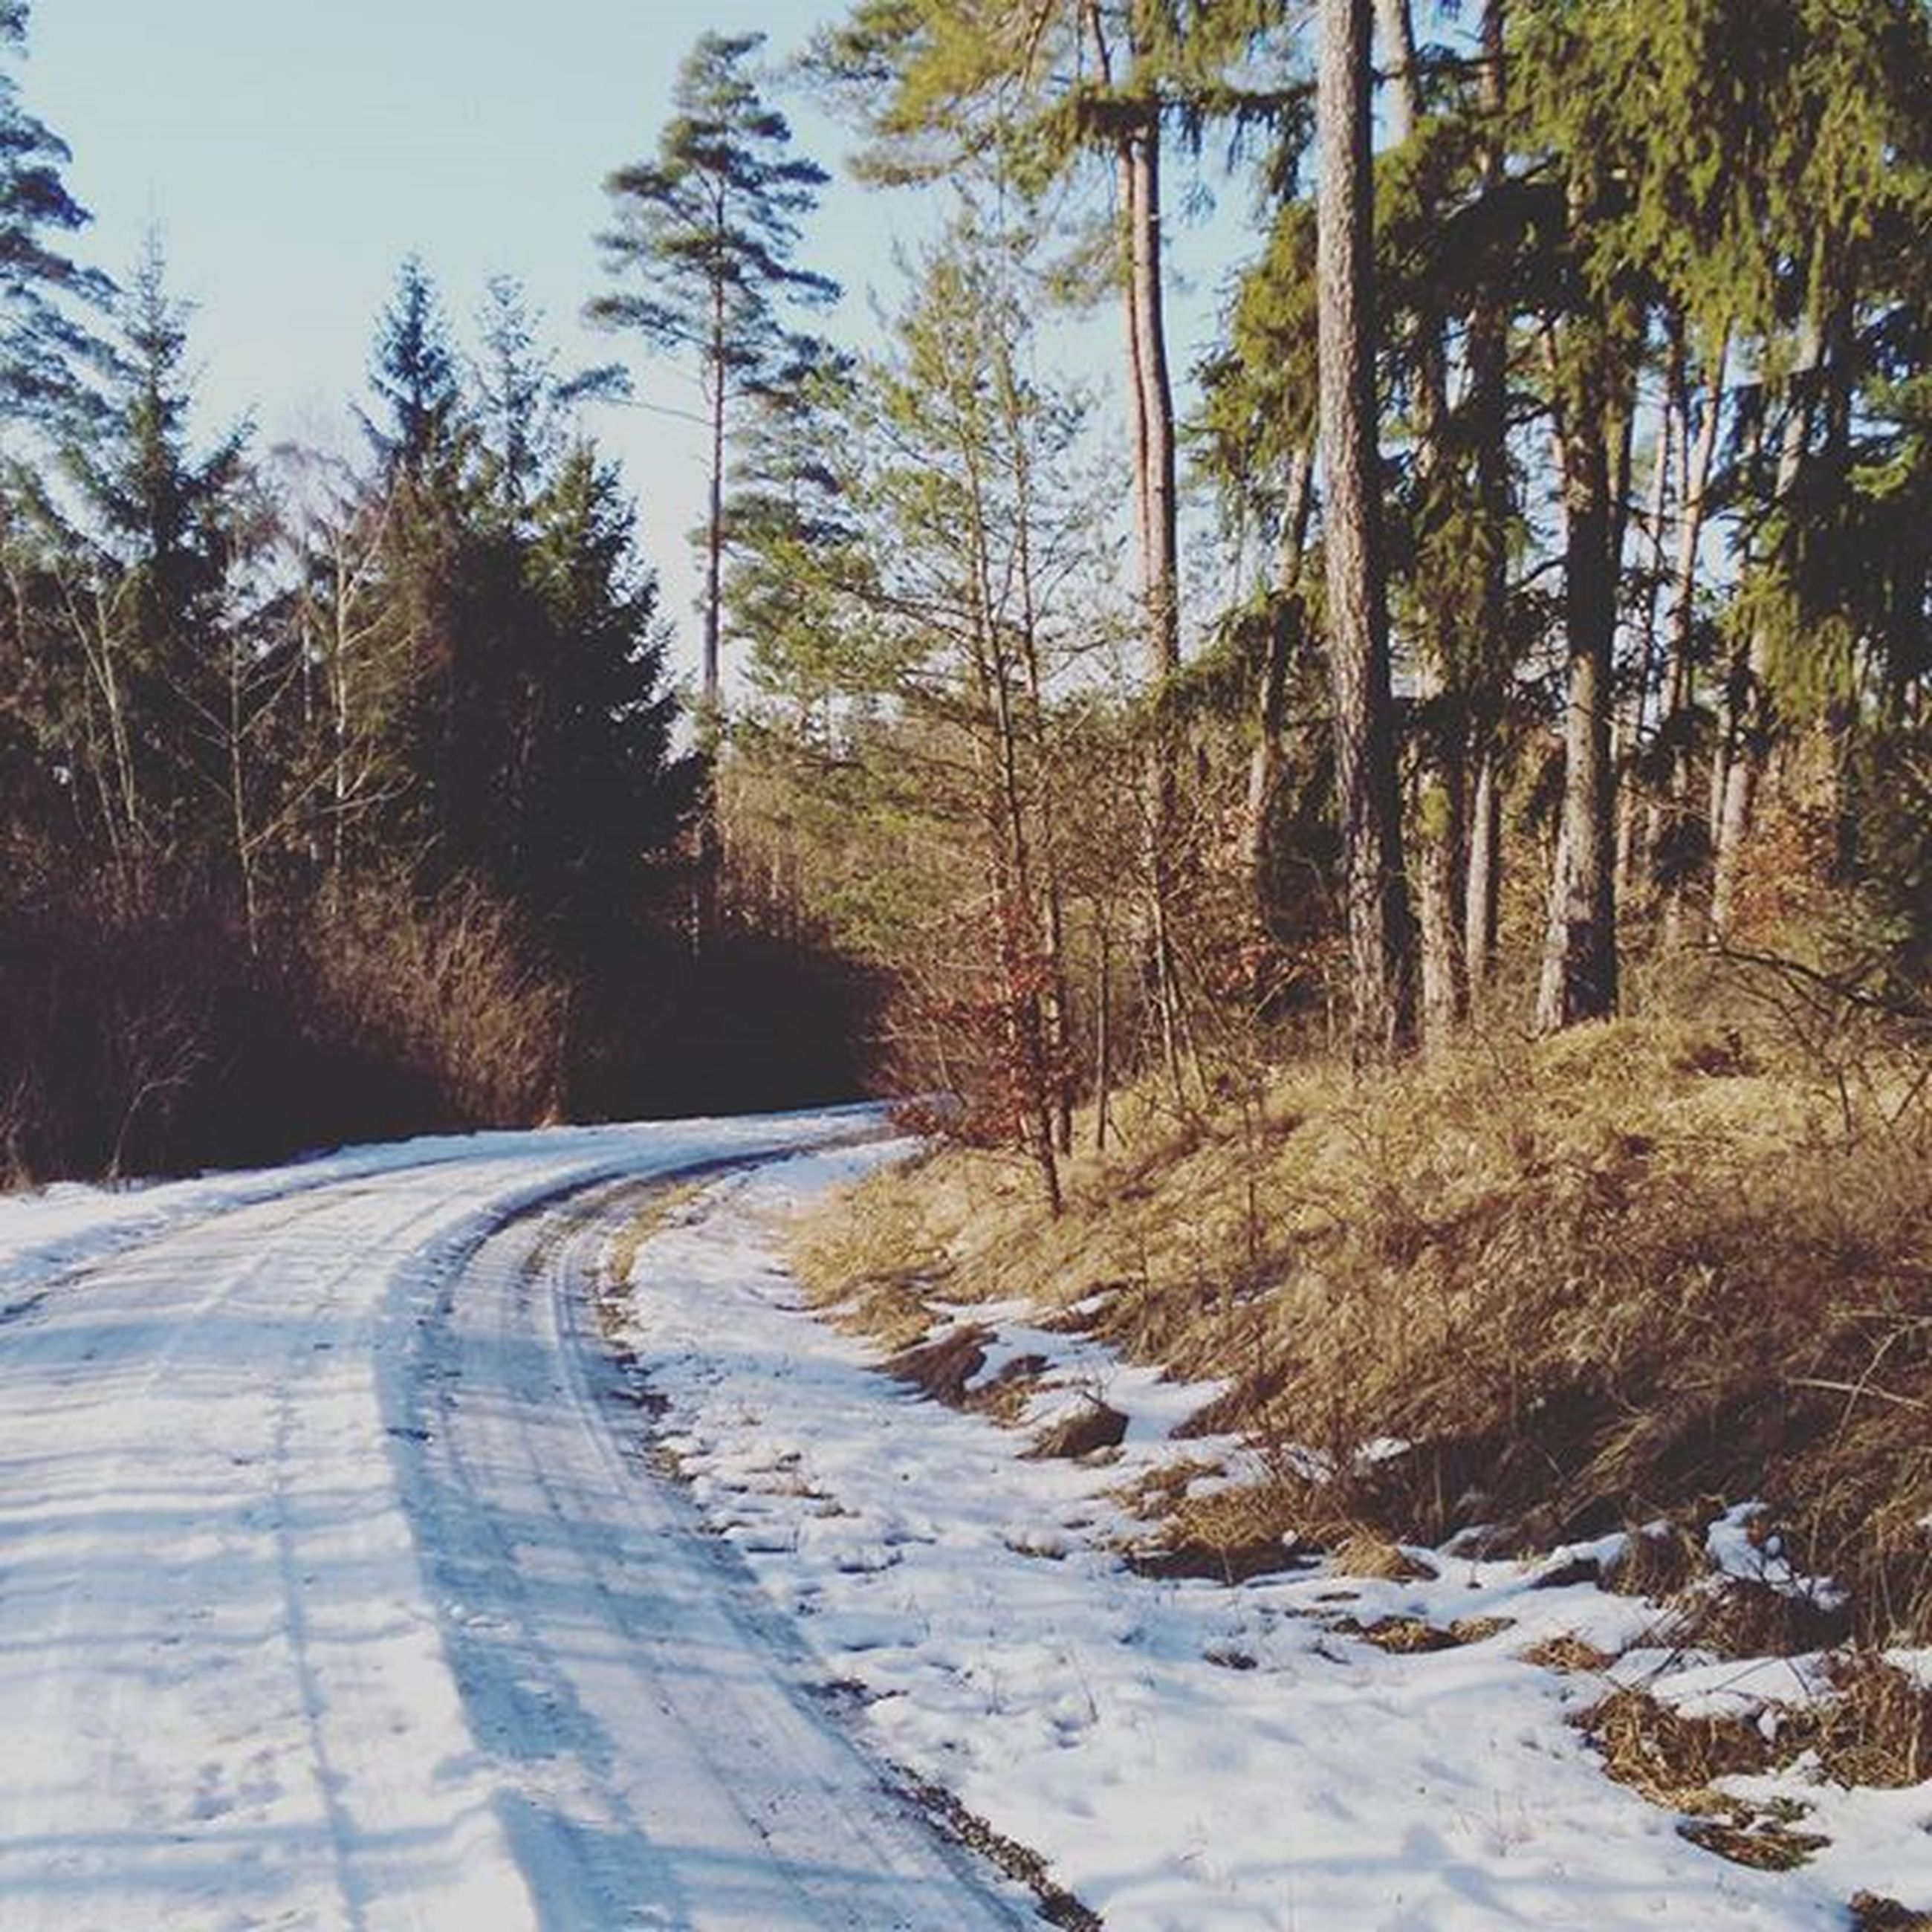 the way forward, transportation, tree, road, diminishing perspective, vanishing point, empty road, country road, snow, nature, tranquility, tranquil scene, forest, dirt road, outdoors, street, non-urban scene, no people, sky, winter